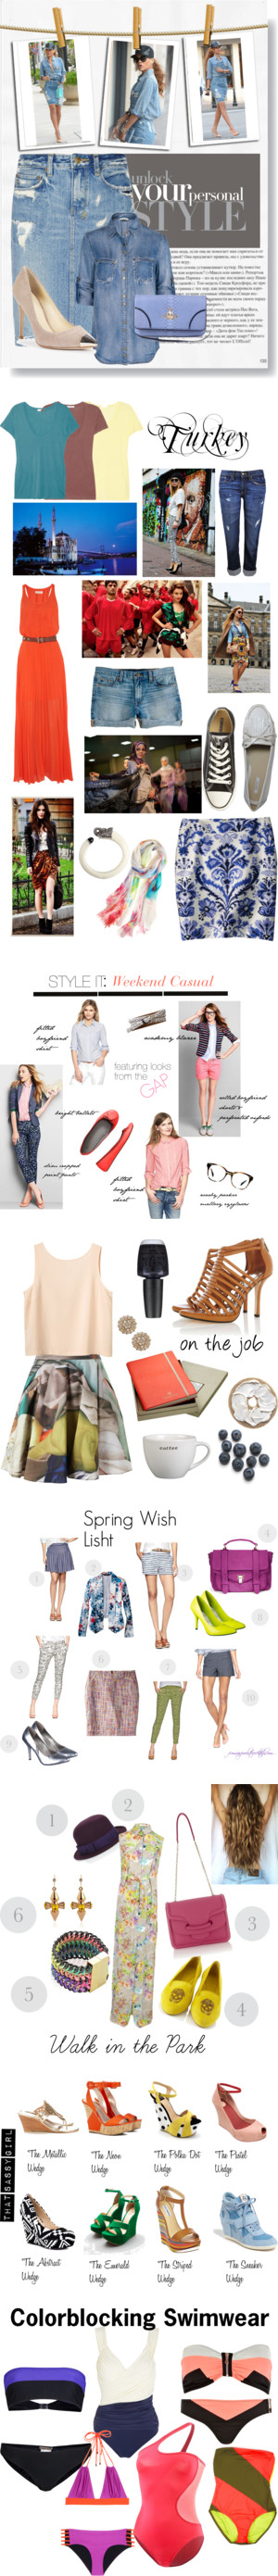 """""""Brilliant Blogger Sets of the Week"""" by polyvore on Polyvore"""